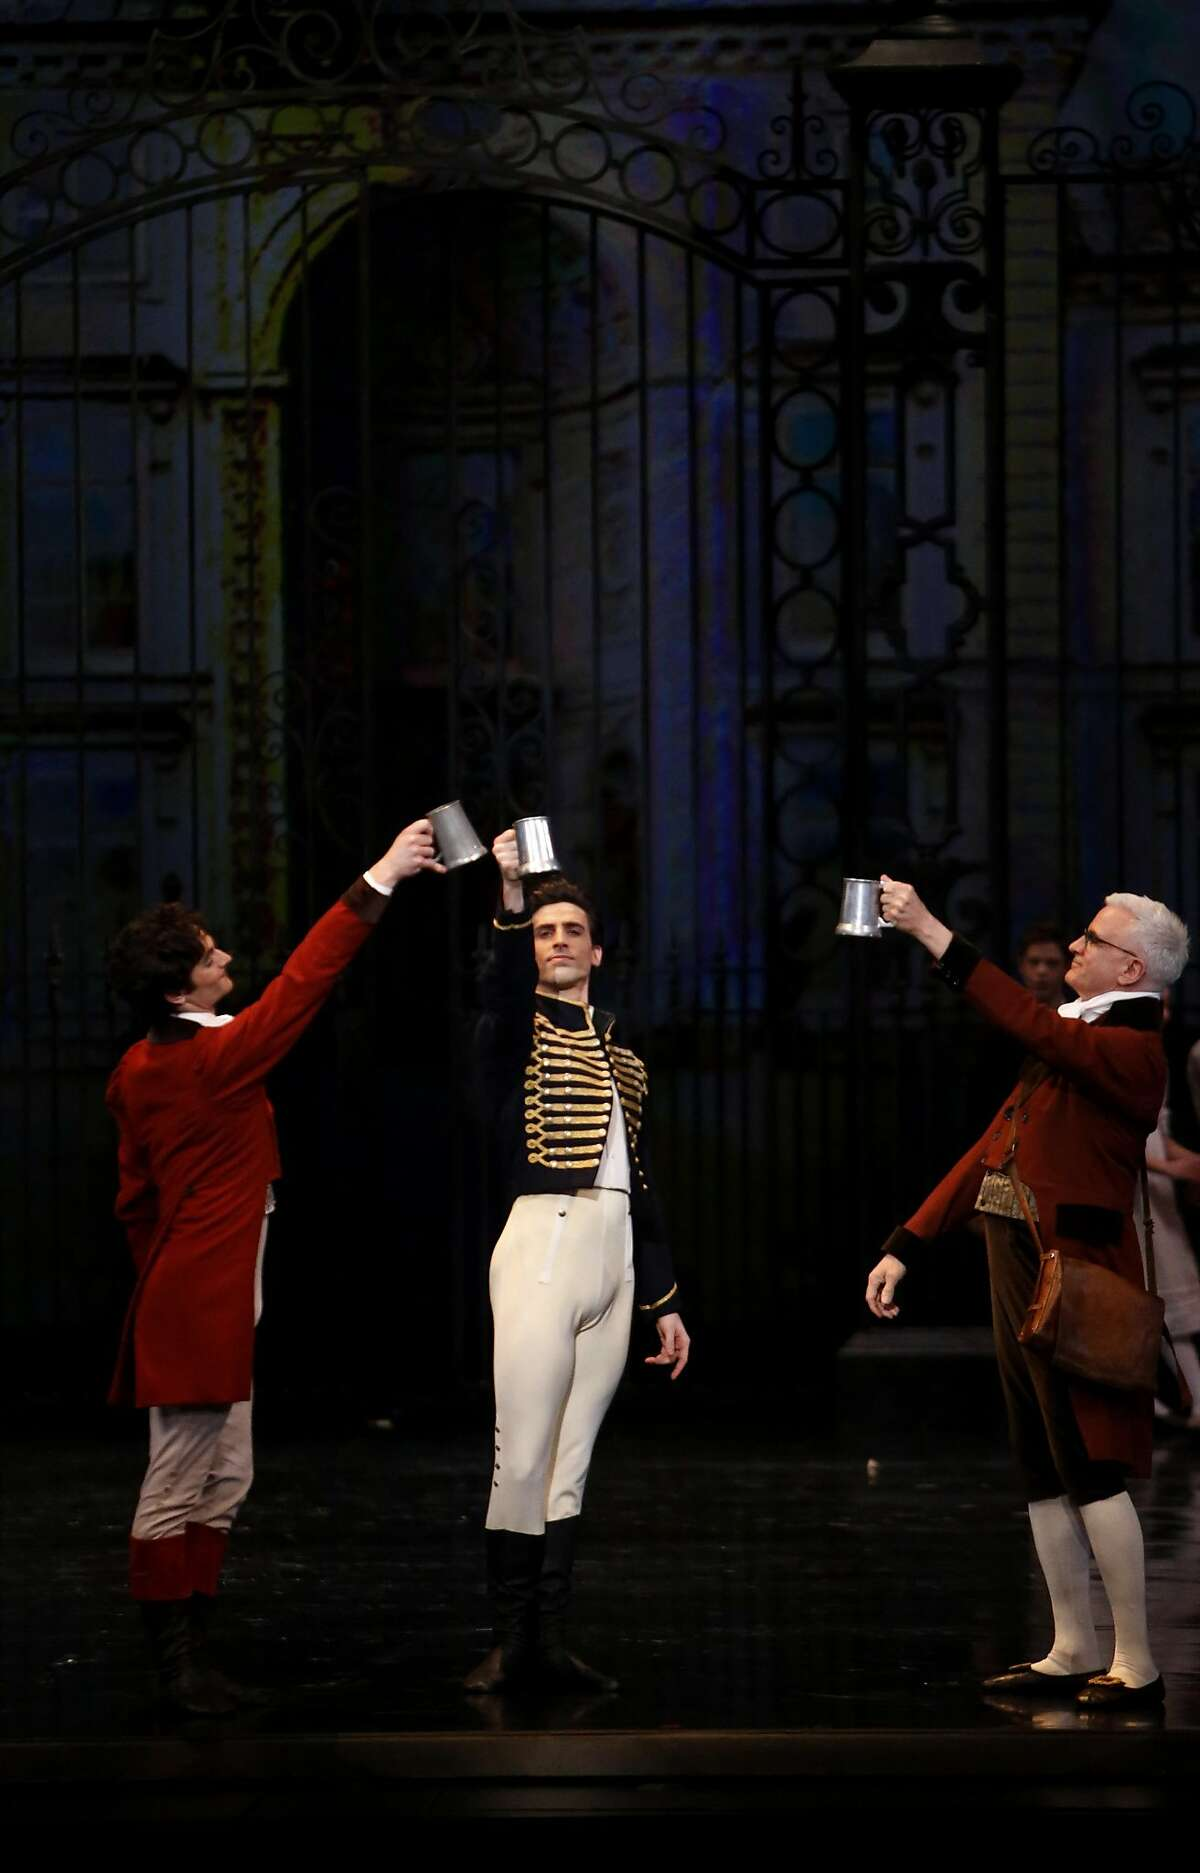 Joseph Walsh, center, performs with the San Francisco Ballet during a dress rehearsal of Sawn Lake in the War Memorial Opera House on Thursday, March 30, 2017, in San Francisco, Calif.